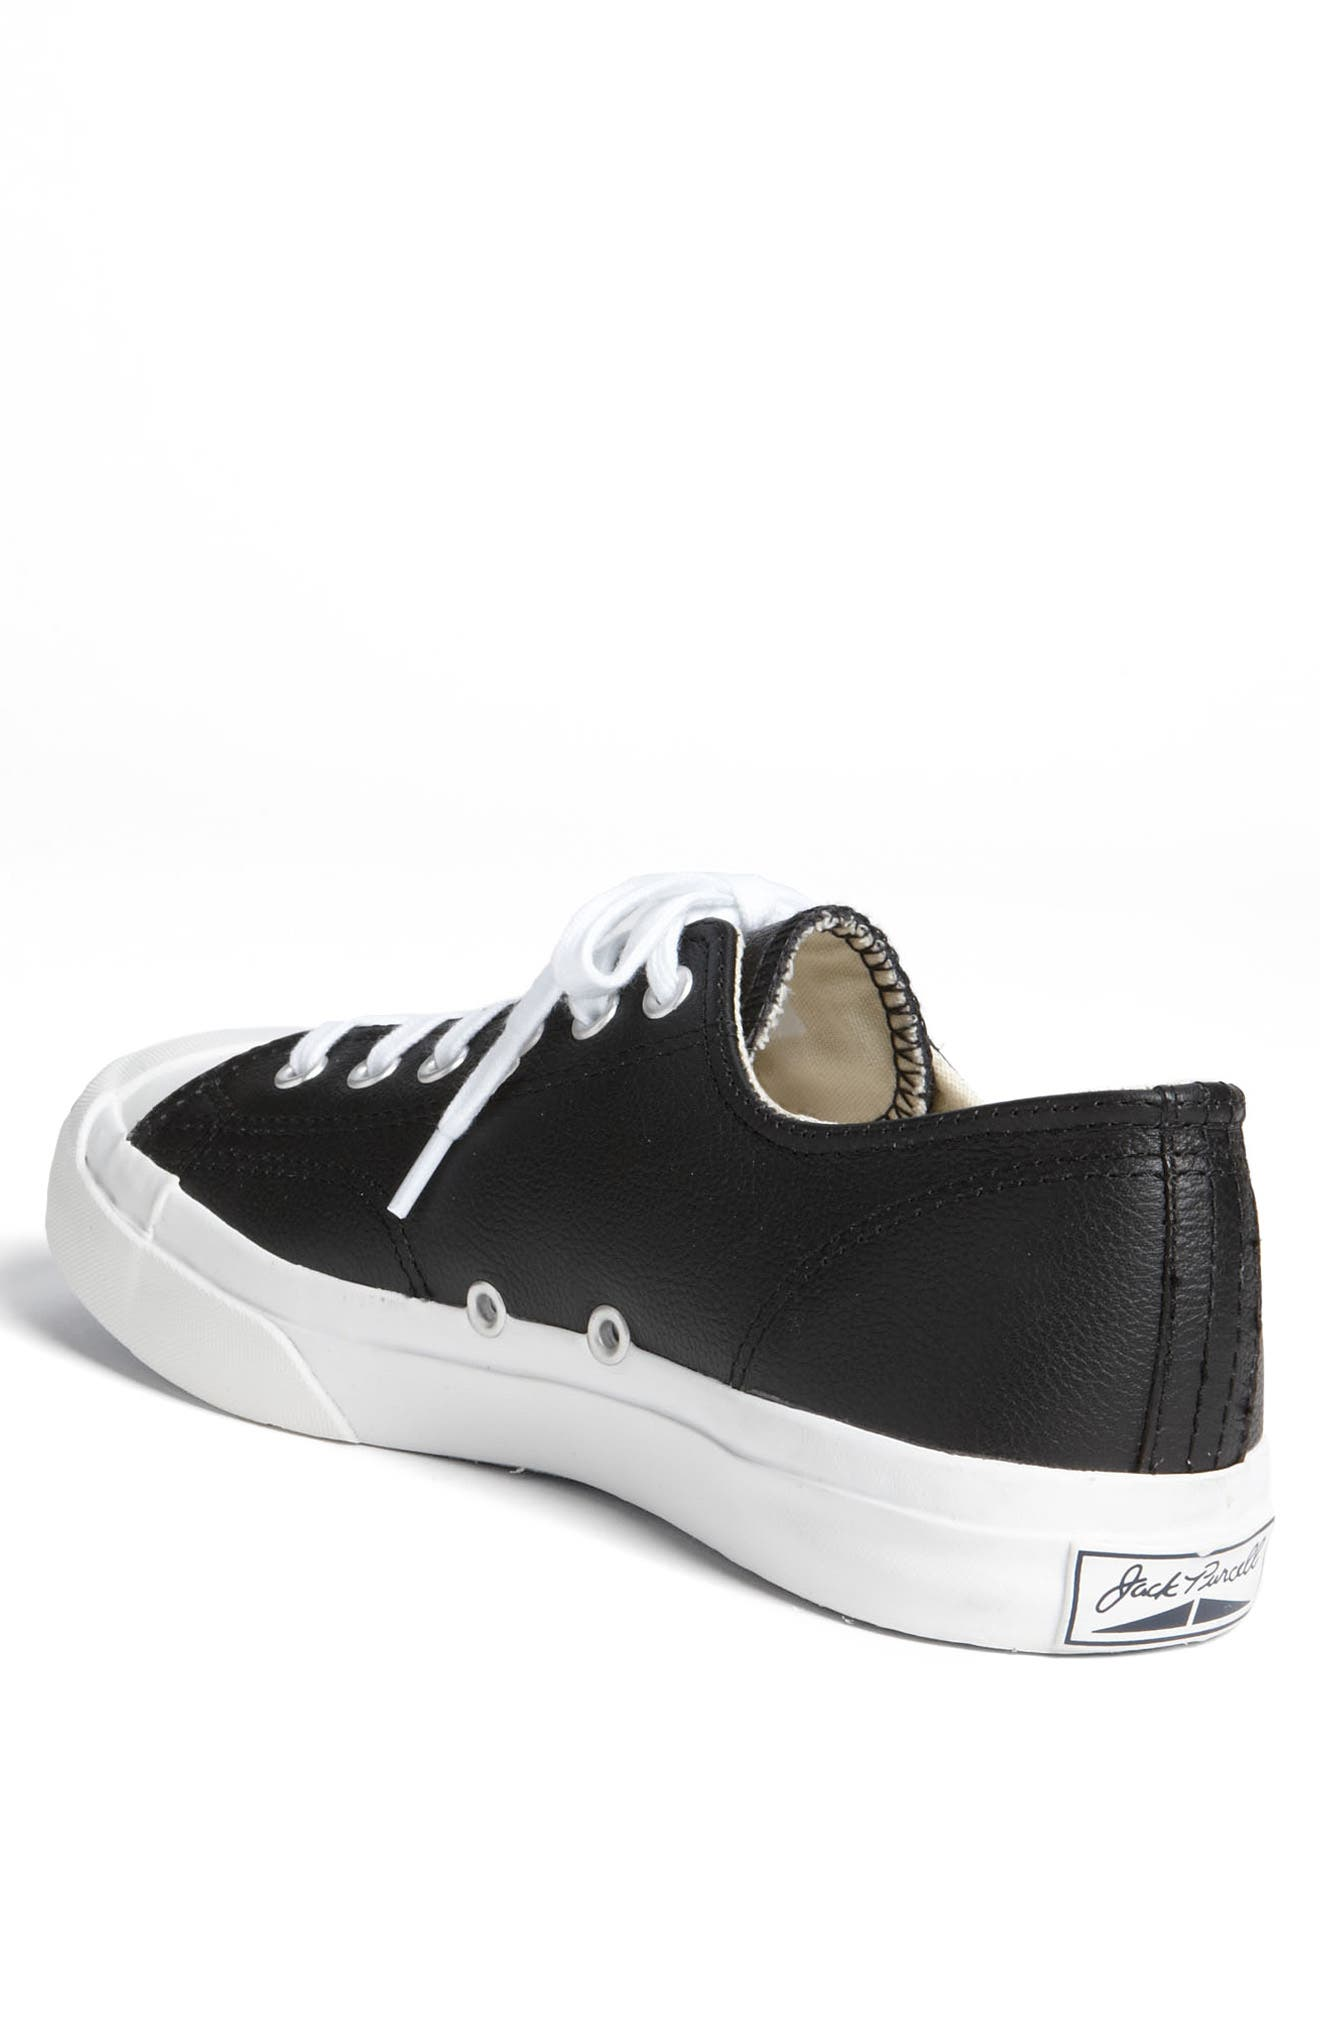 b3003404ce68c8 Converse Jack Purcell